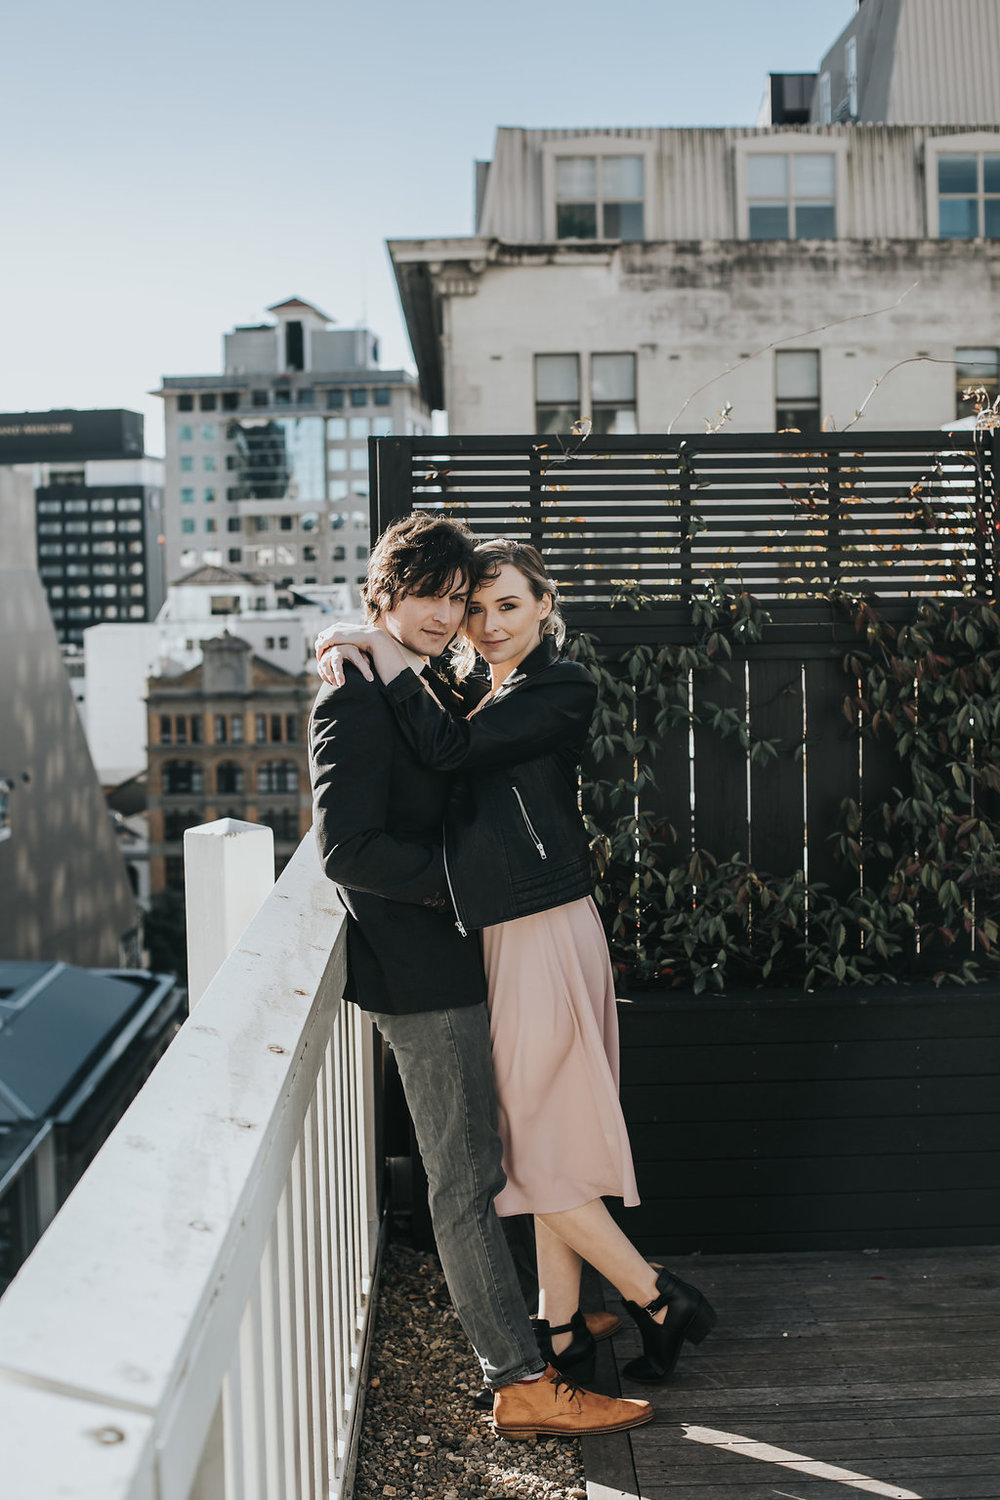 ChanceryShoot-StoriesbyBianca(143of195).jpg